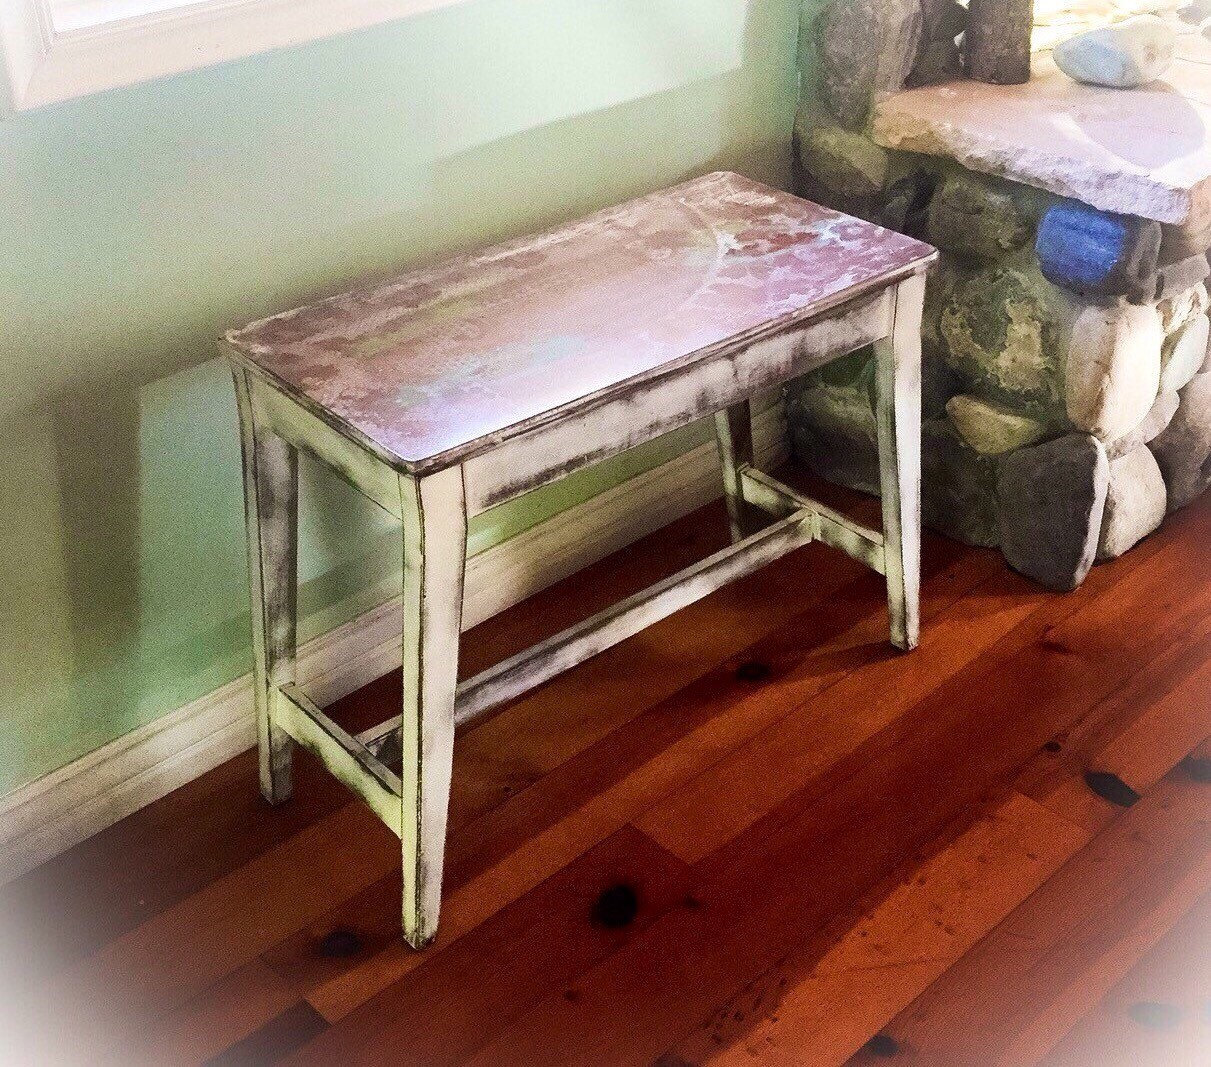 wood awesome dining french new coffee white style bassett cottage sofa kitchen side mahogany furniture collection full antique small tables table baker end lacquer painted of size country cube natural distressed